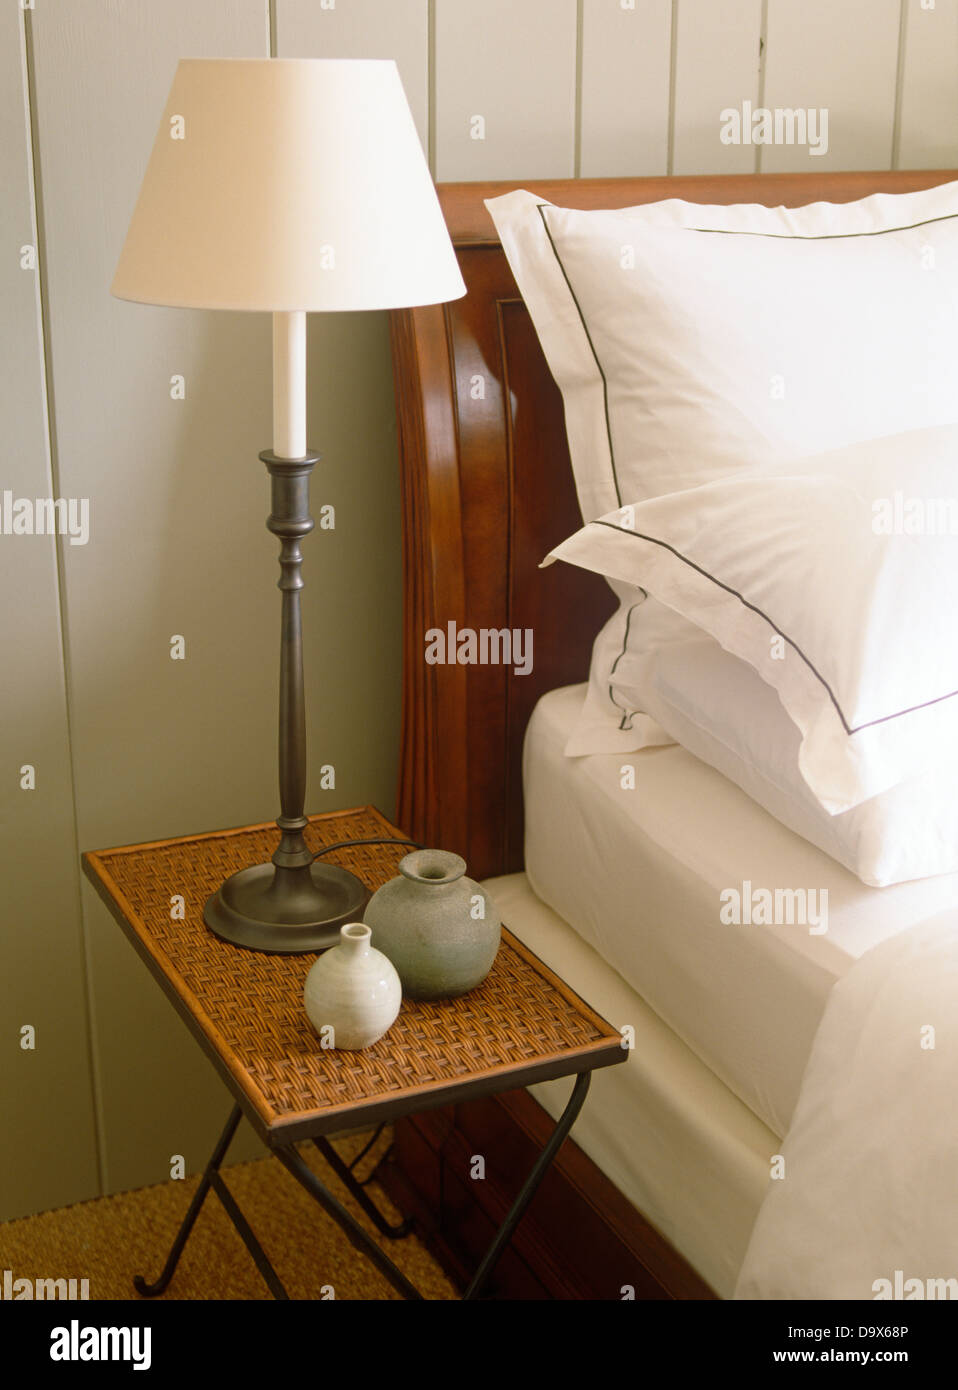 Lamp on wicker bedside table next to sleigh bed with crisp white pillows  and bed linen